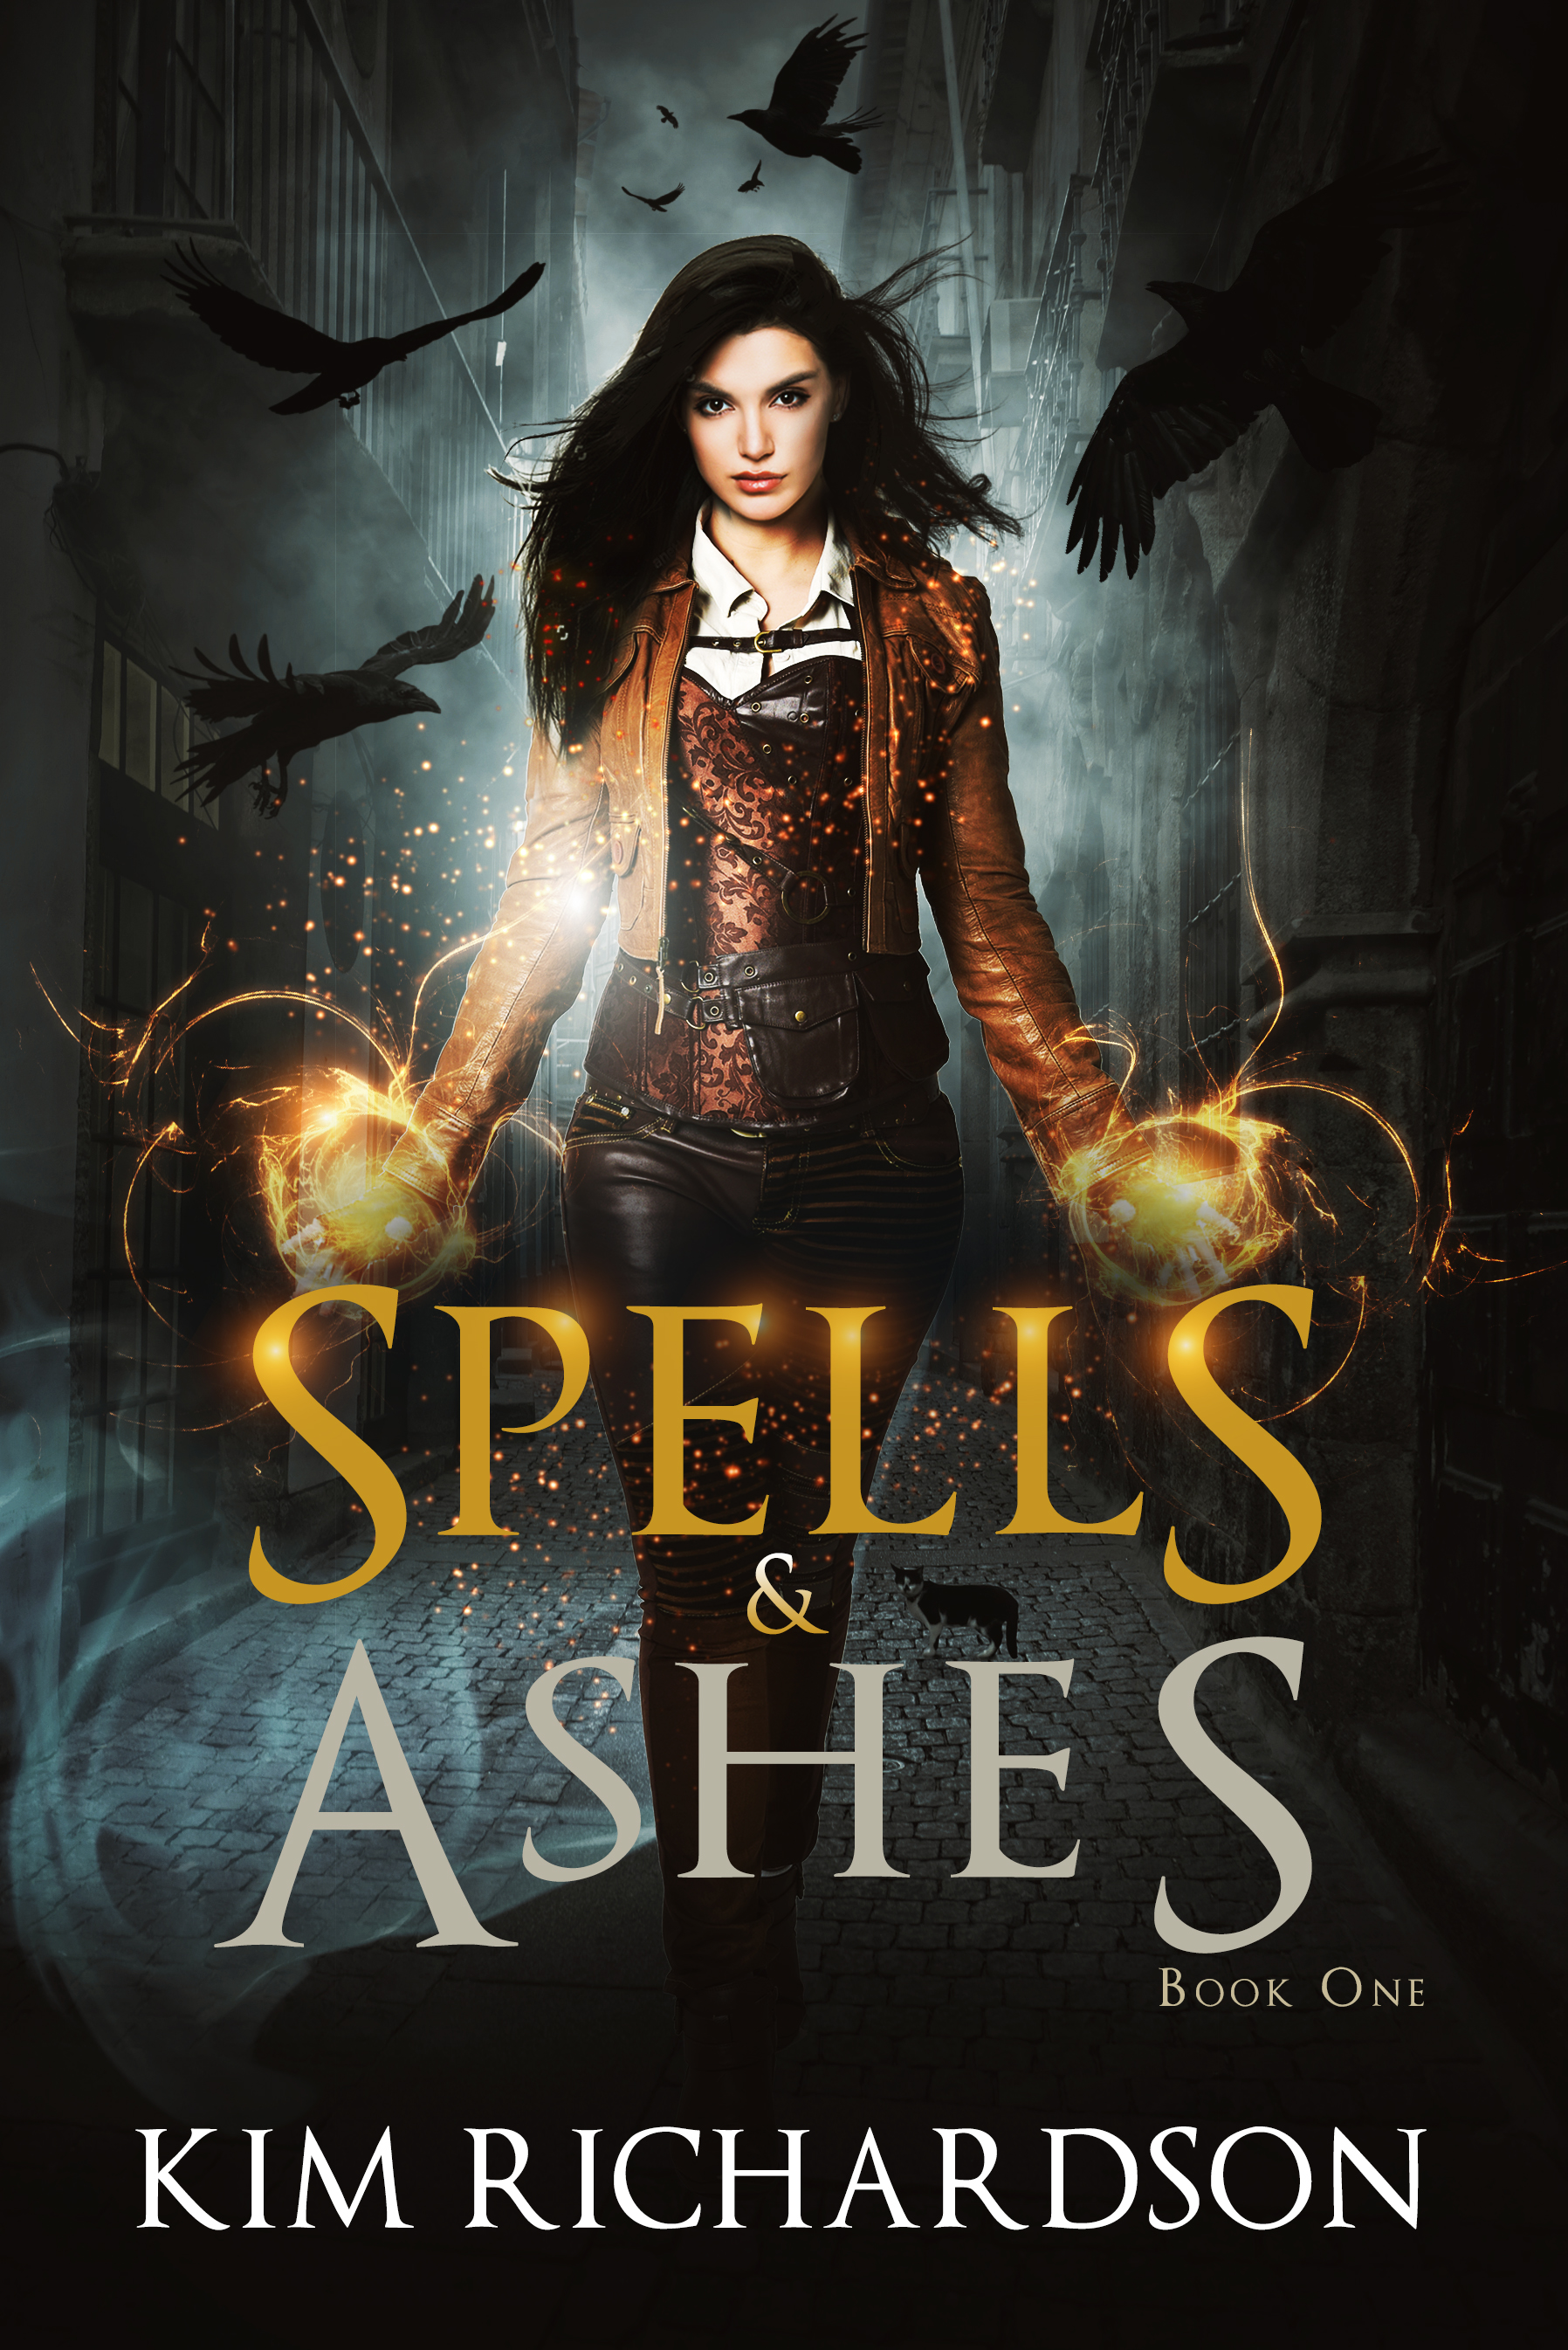 Spells & Ashes (sst-cccxciv)